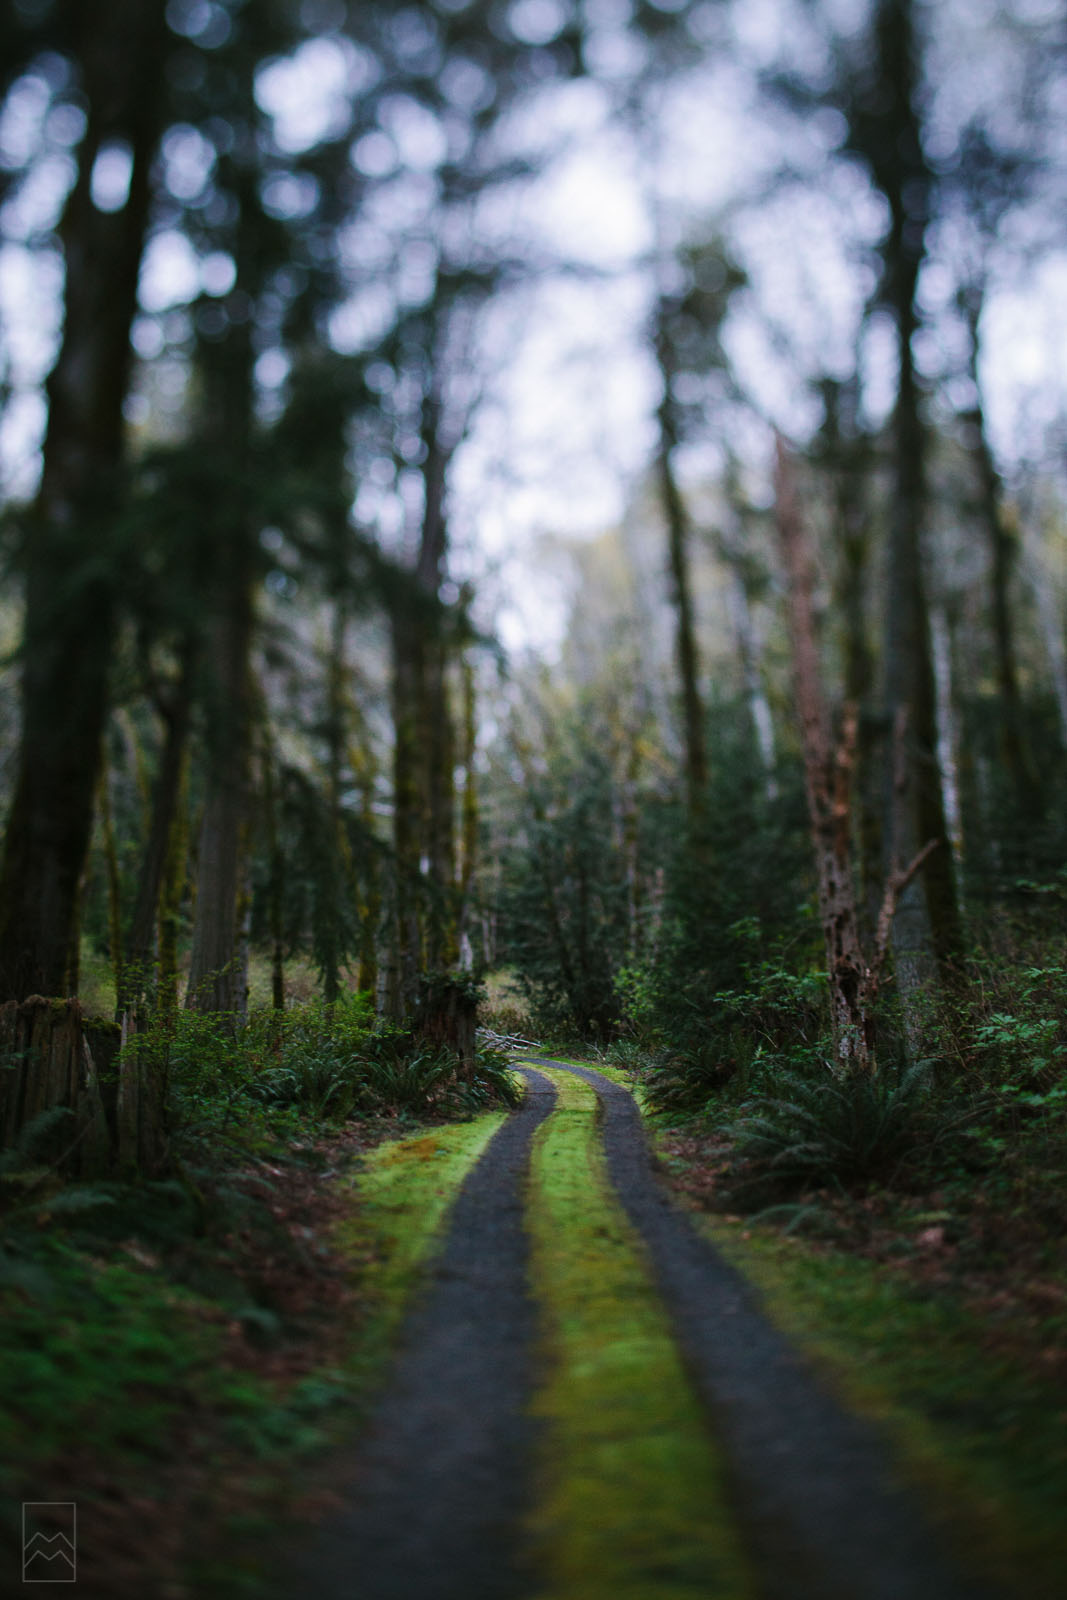 tilt-shift photo of a path in the woods by Meghan McMackin